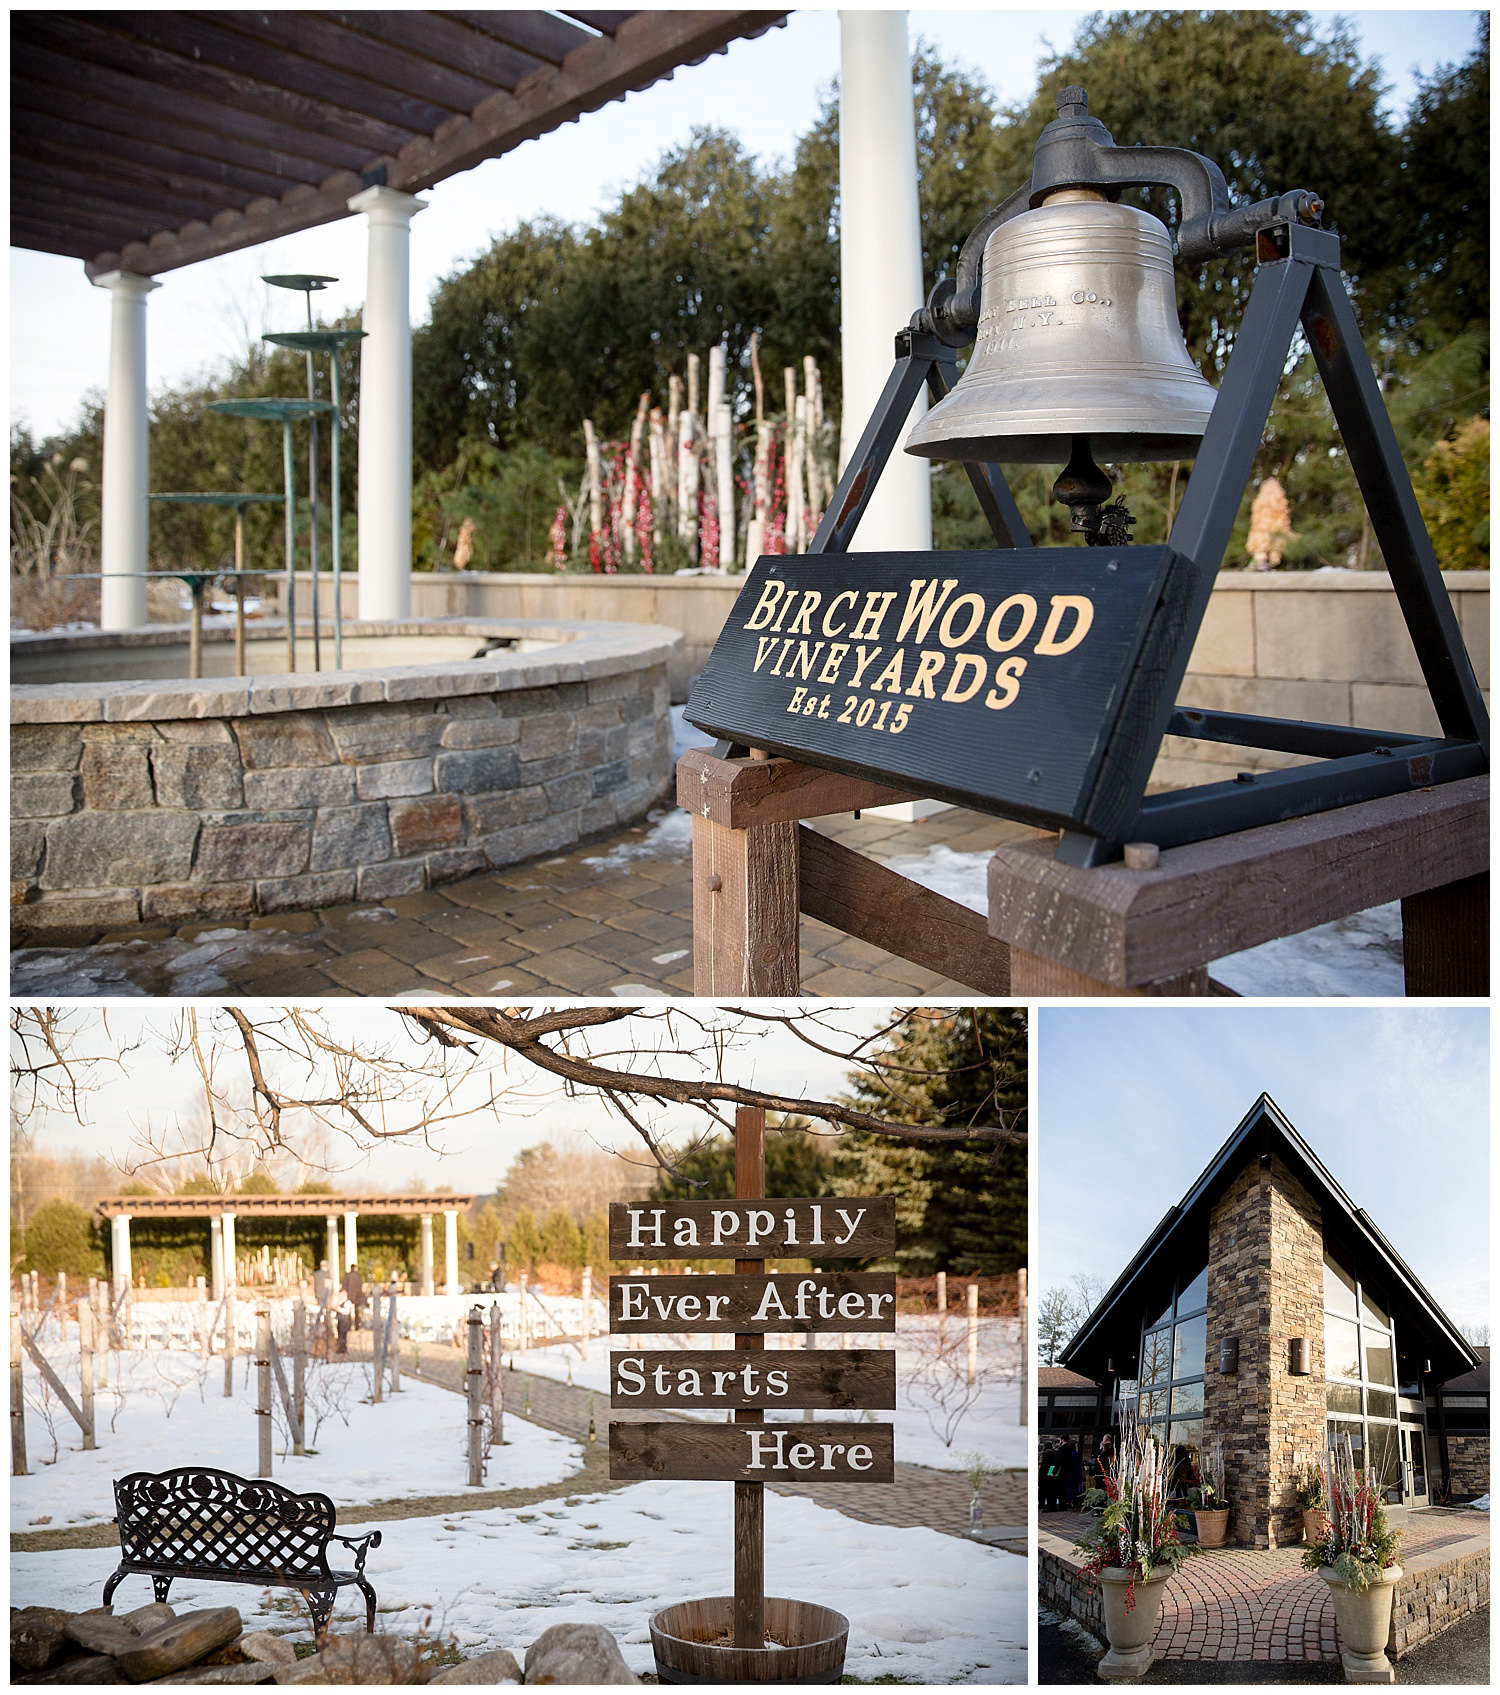 Birchwood-Vineyards-Wedding